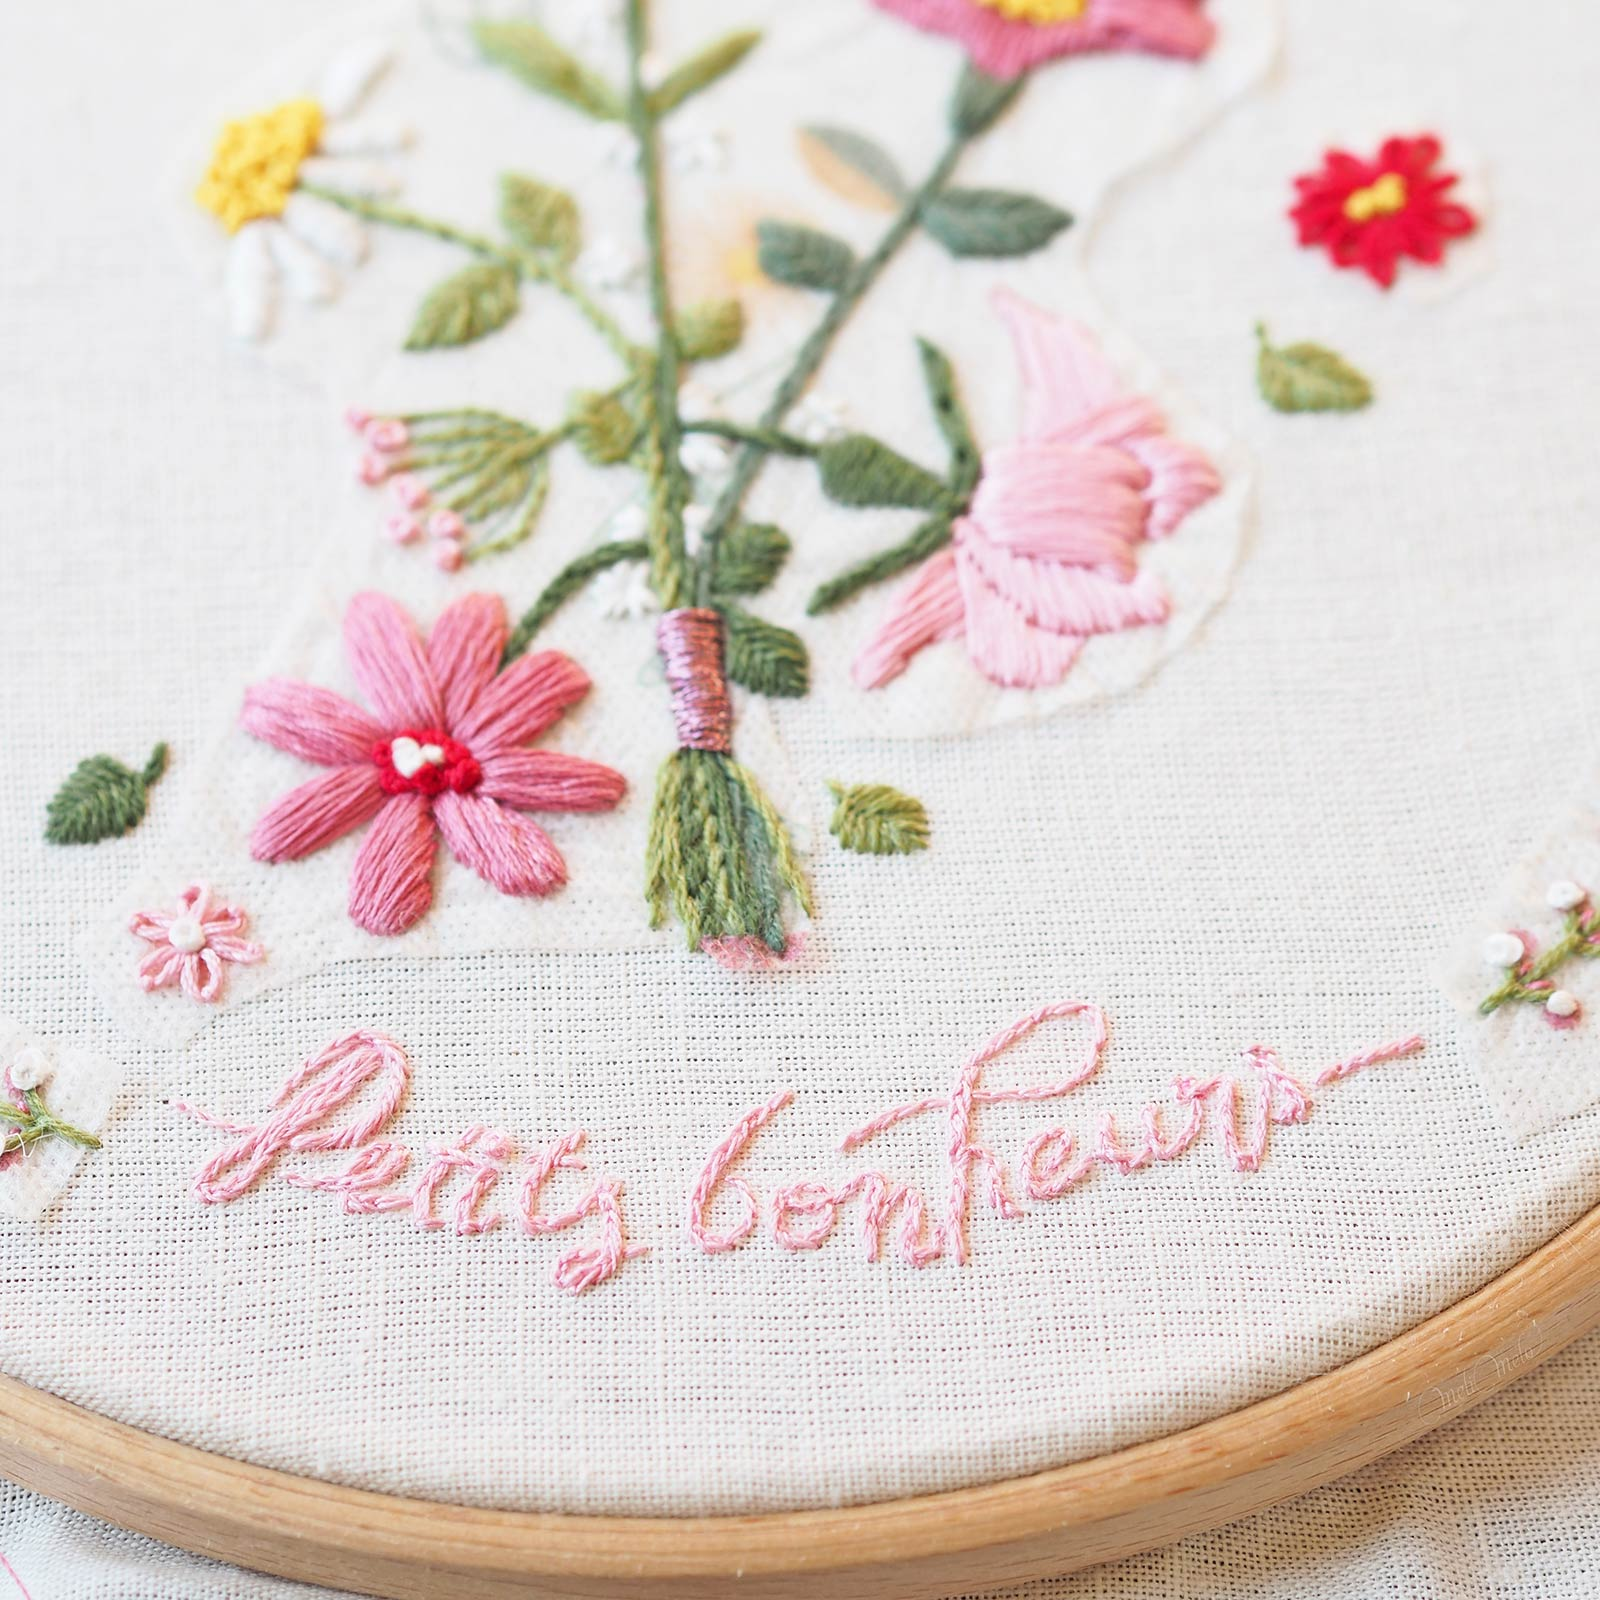 broderie-calligraphie-petits-bonheurs-laboutiquedemelimelo